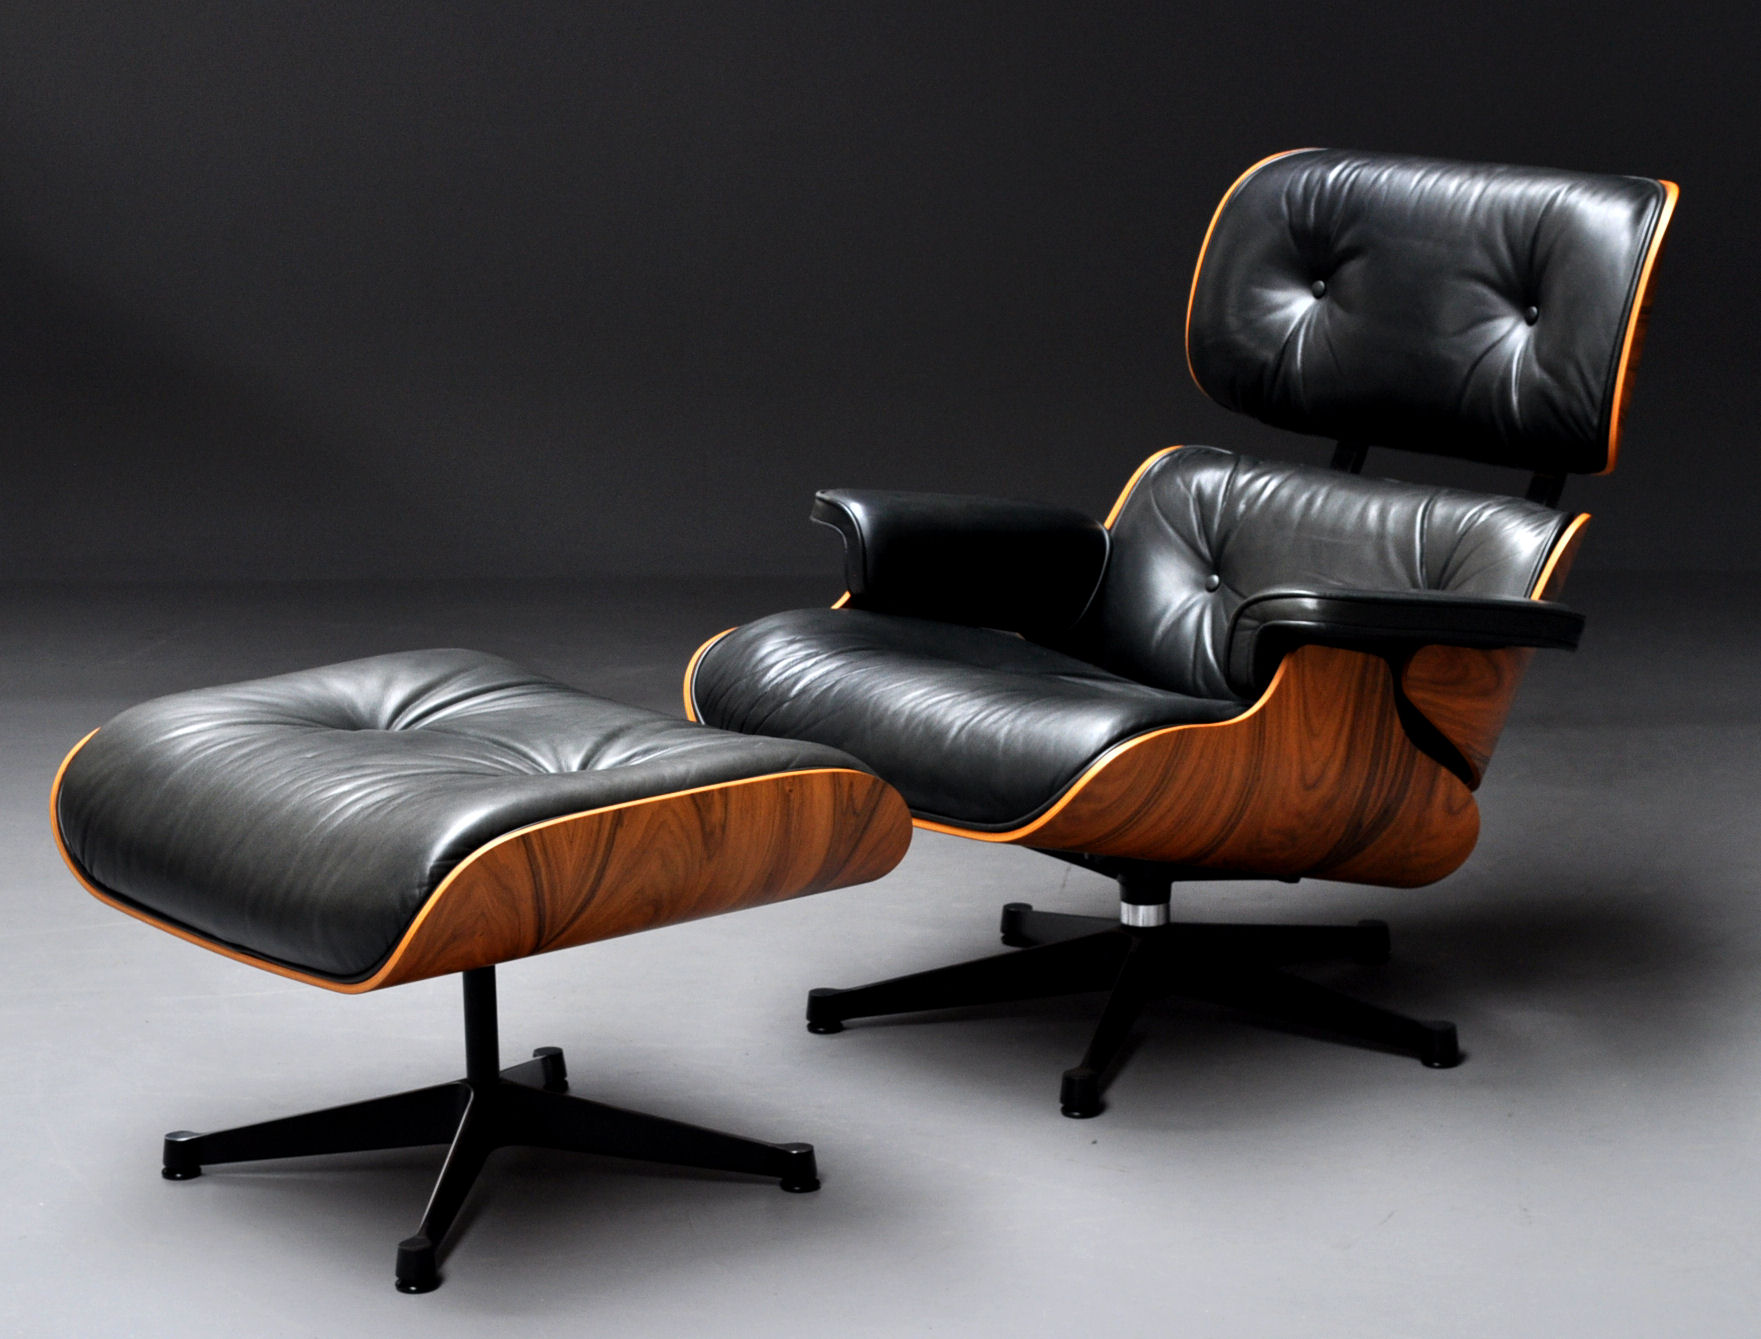 Charles Eames Lounge Chair Charles & Ray Eames. Lounge Chair With Ottoman, Anniversary Model, No. 062 (3) | Lauritz.com